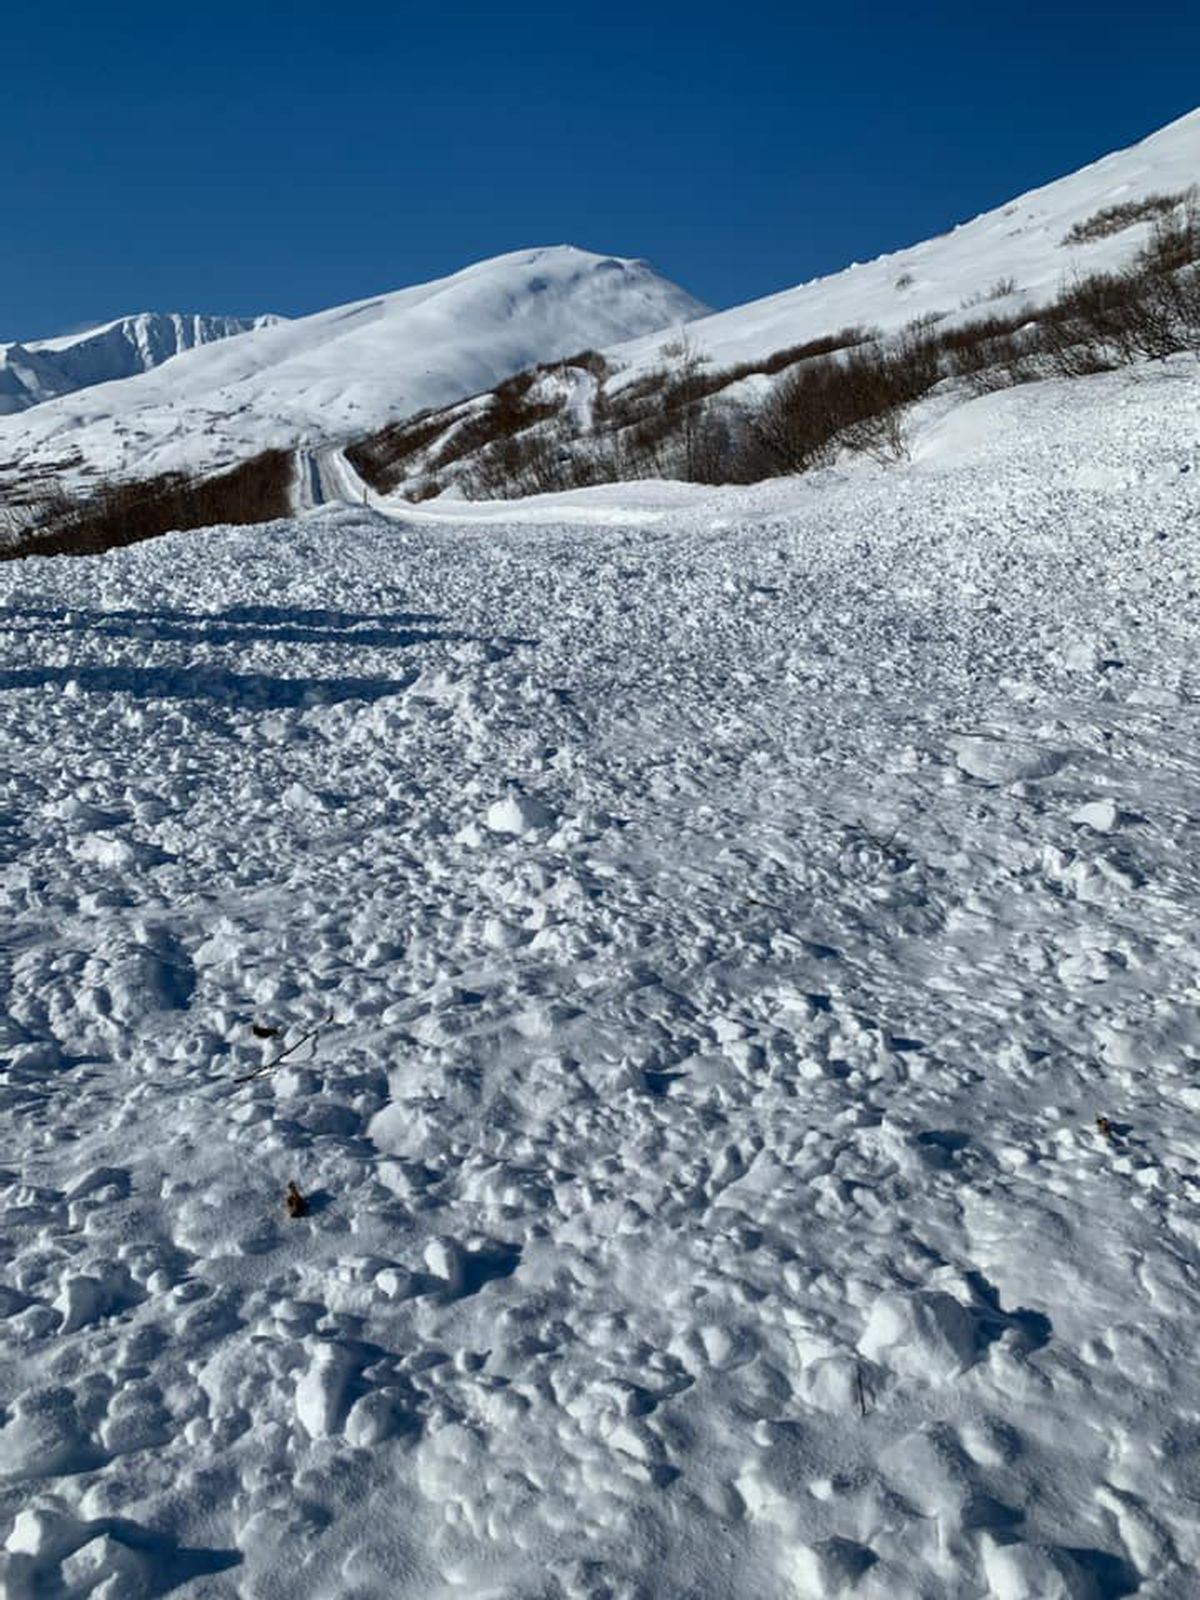 An avalanche on Friday closed the road leading to Hatcher Pass. (Photo by Hatcher Pass Avalanche Center professional staff)